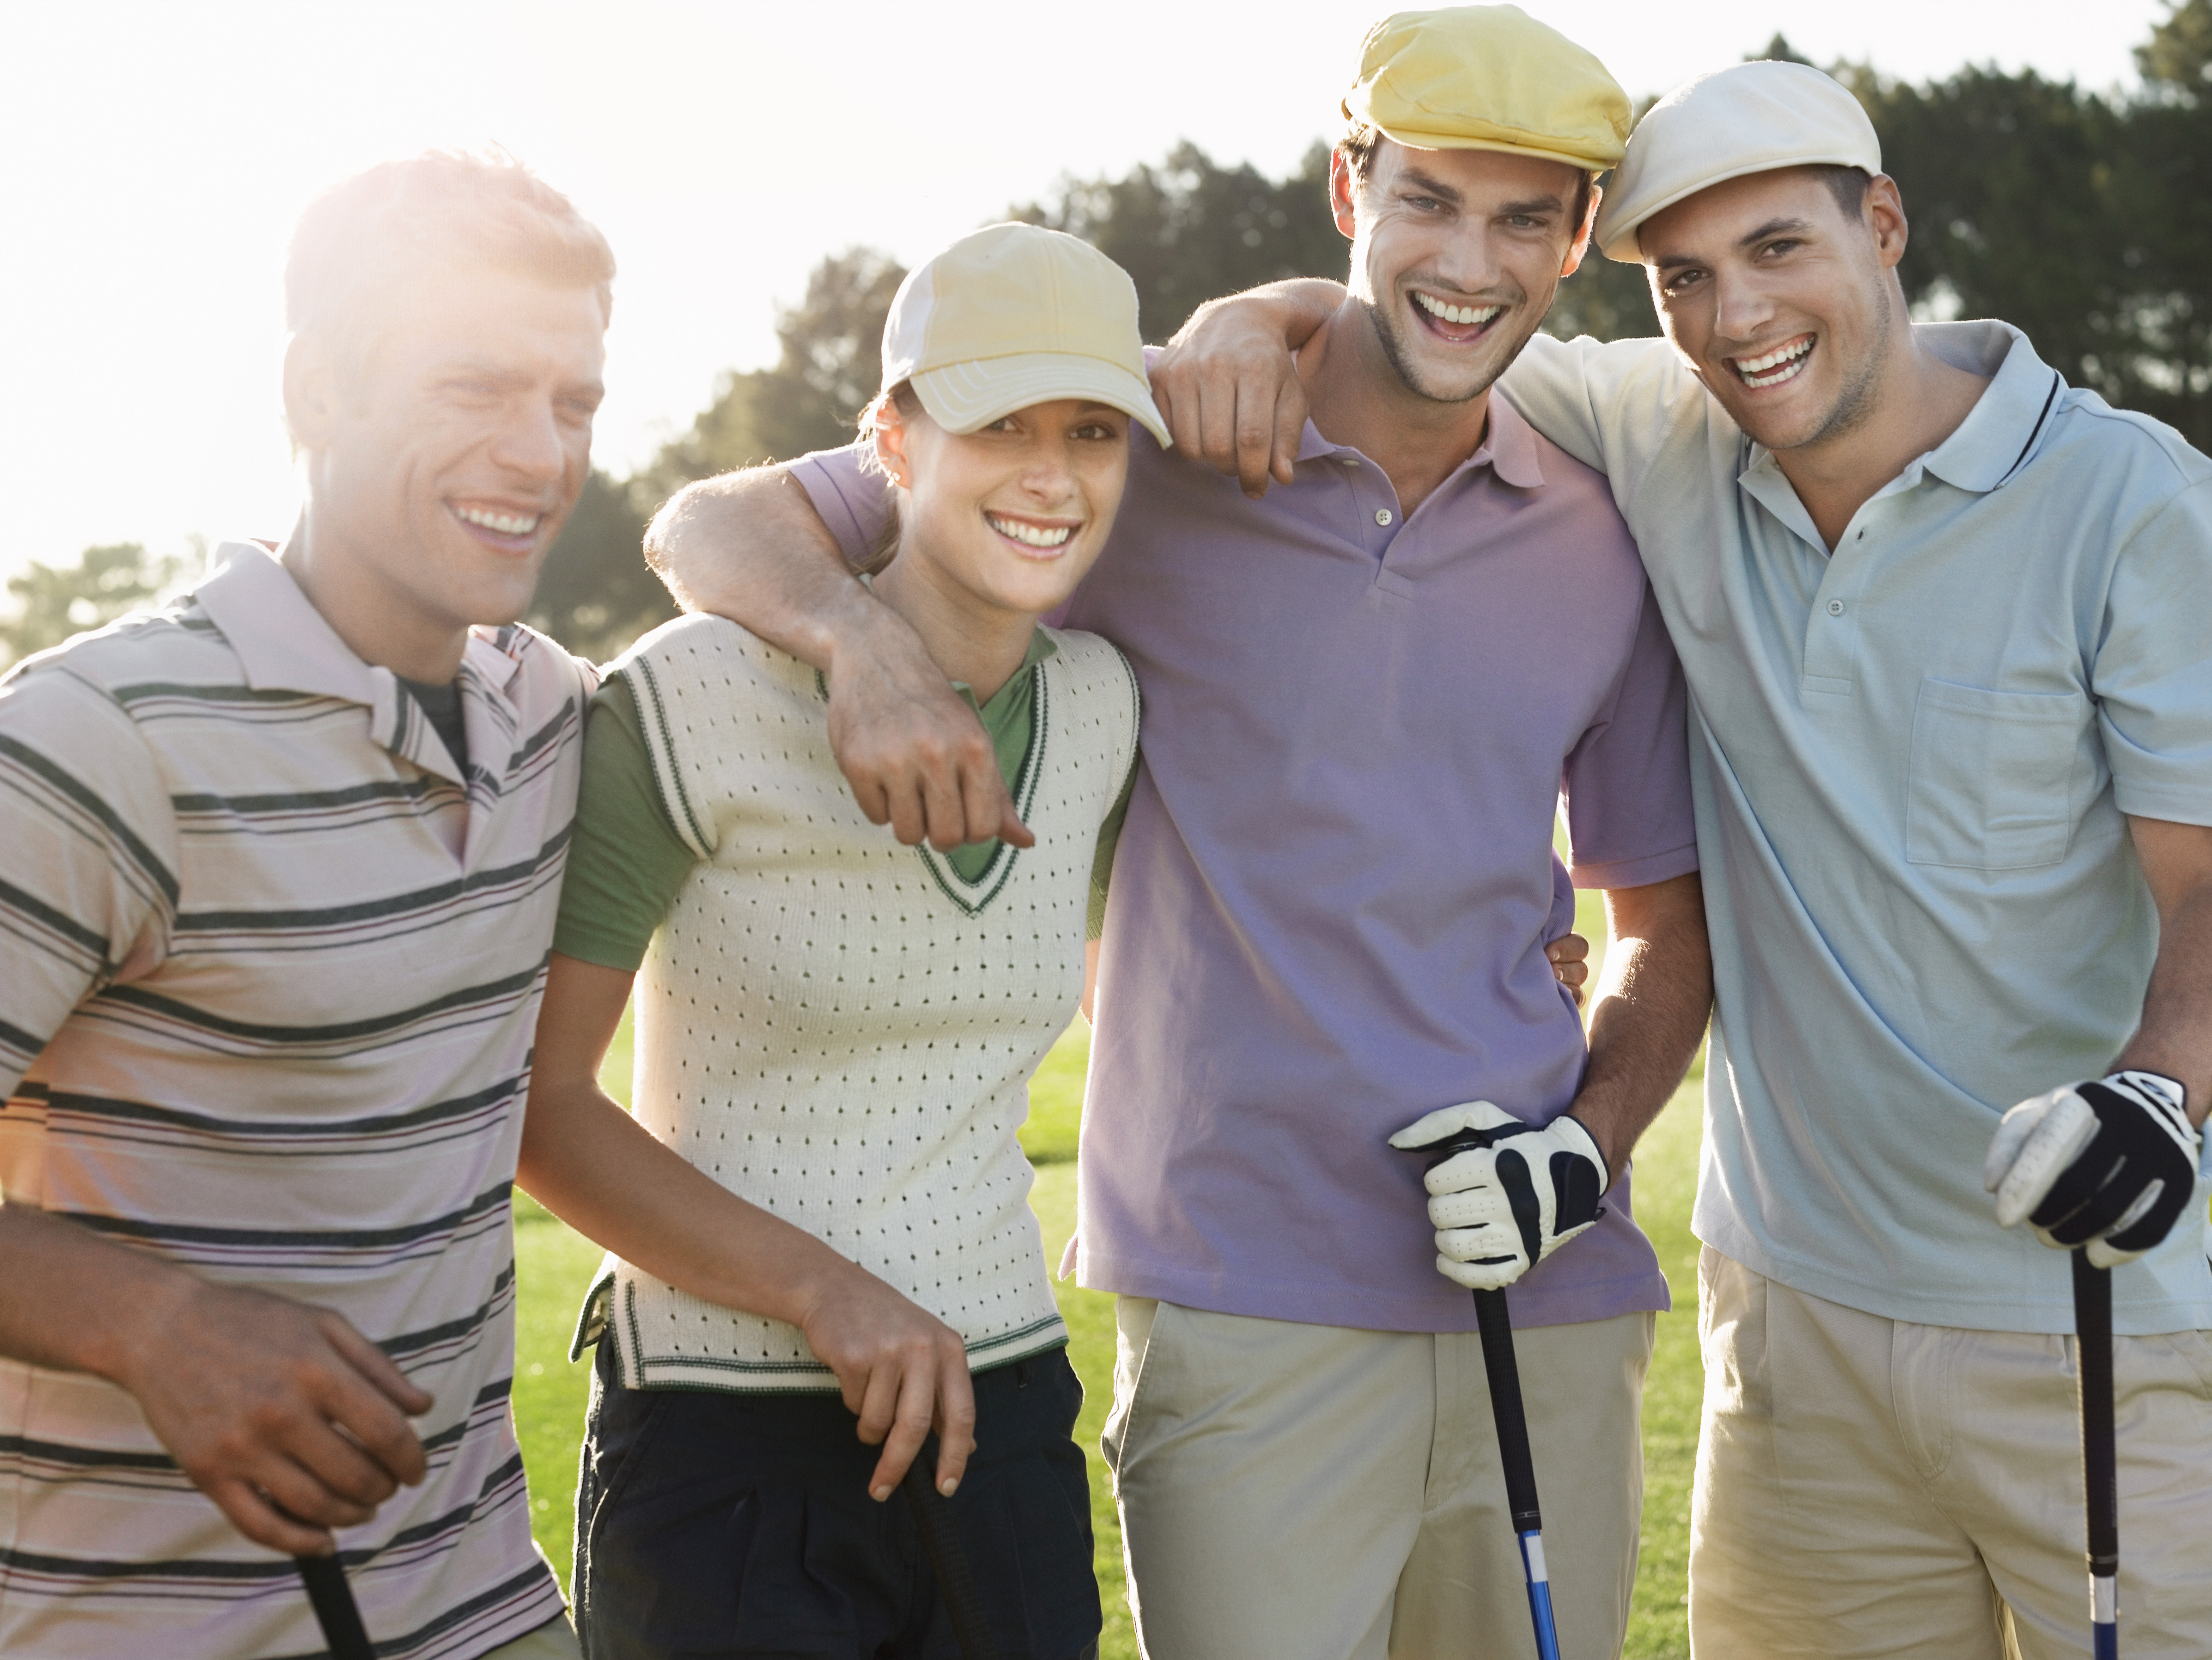 Leagues, Outings, Events, Group of Golfers - Men and Woman